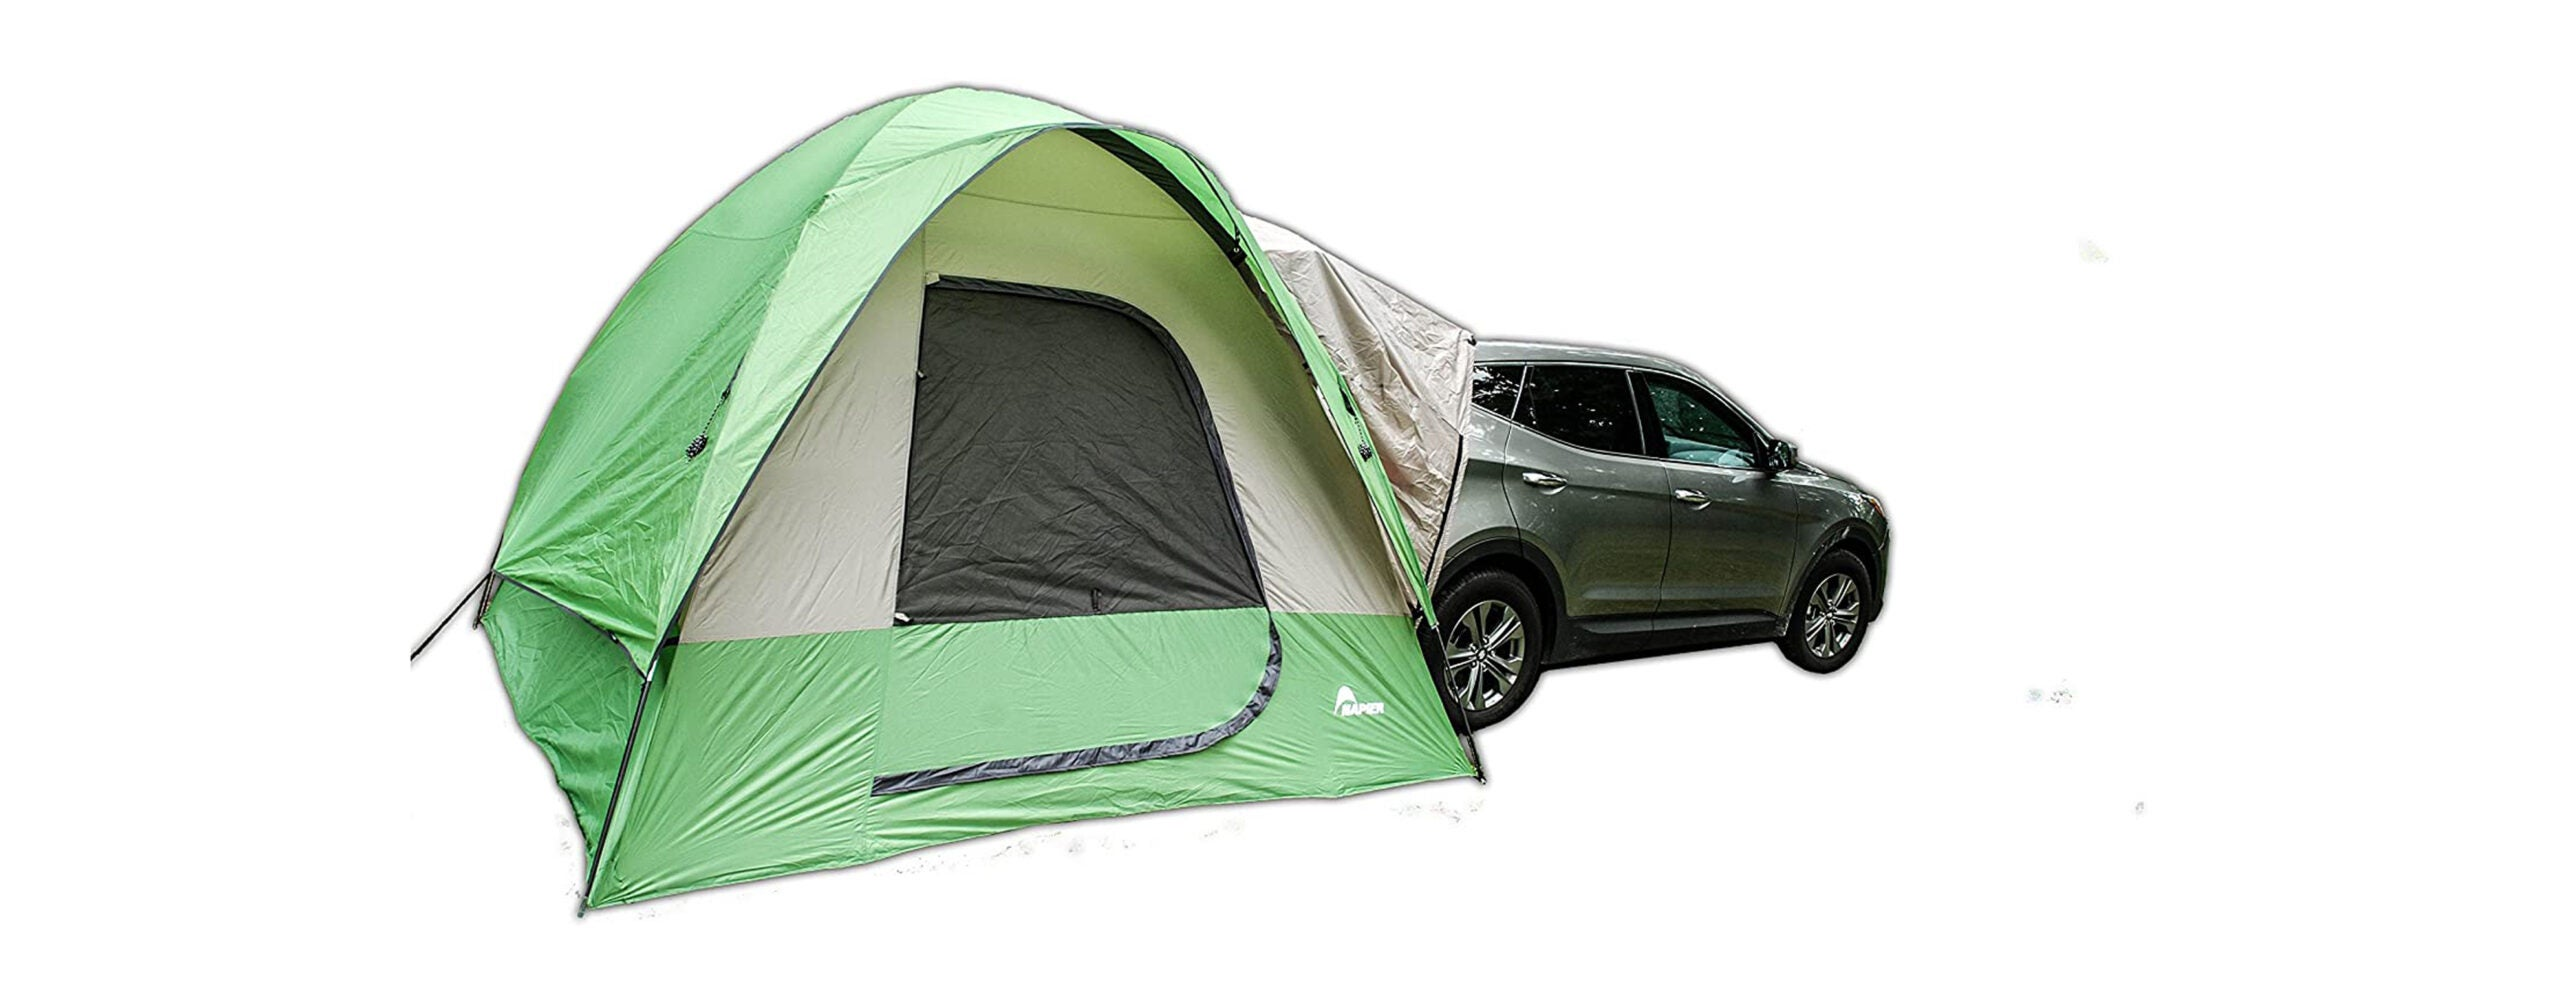 The Best Minivan Tents (Review and Buying Guide) in 2021